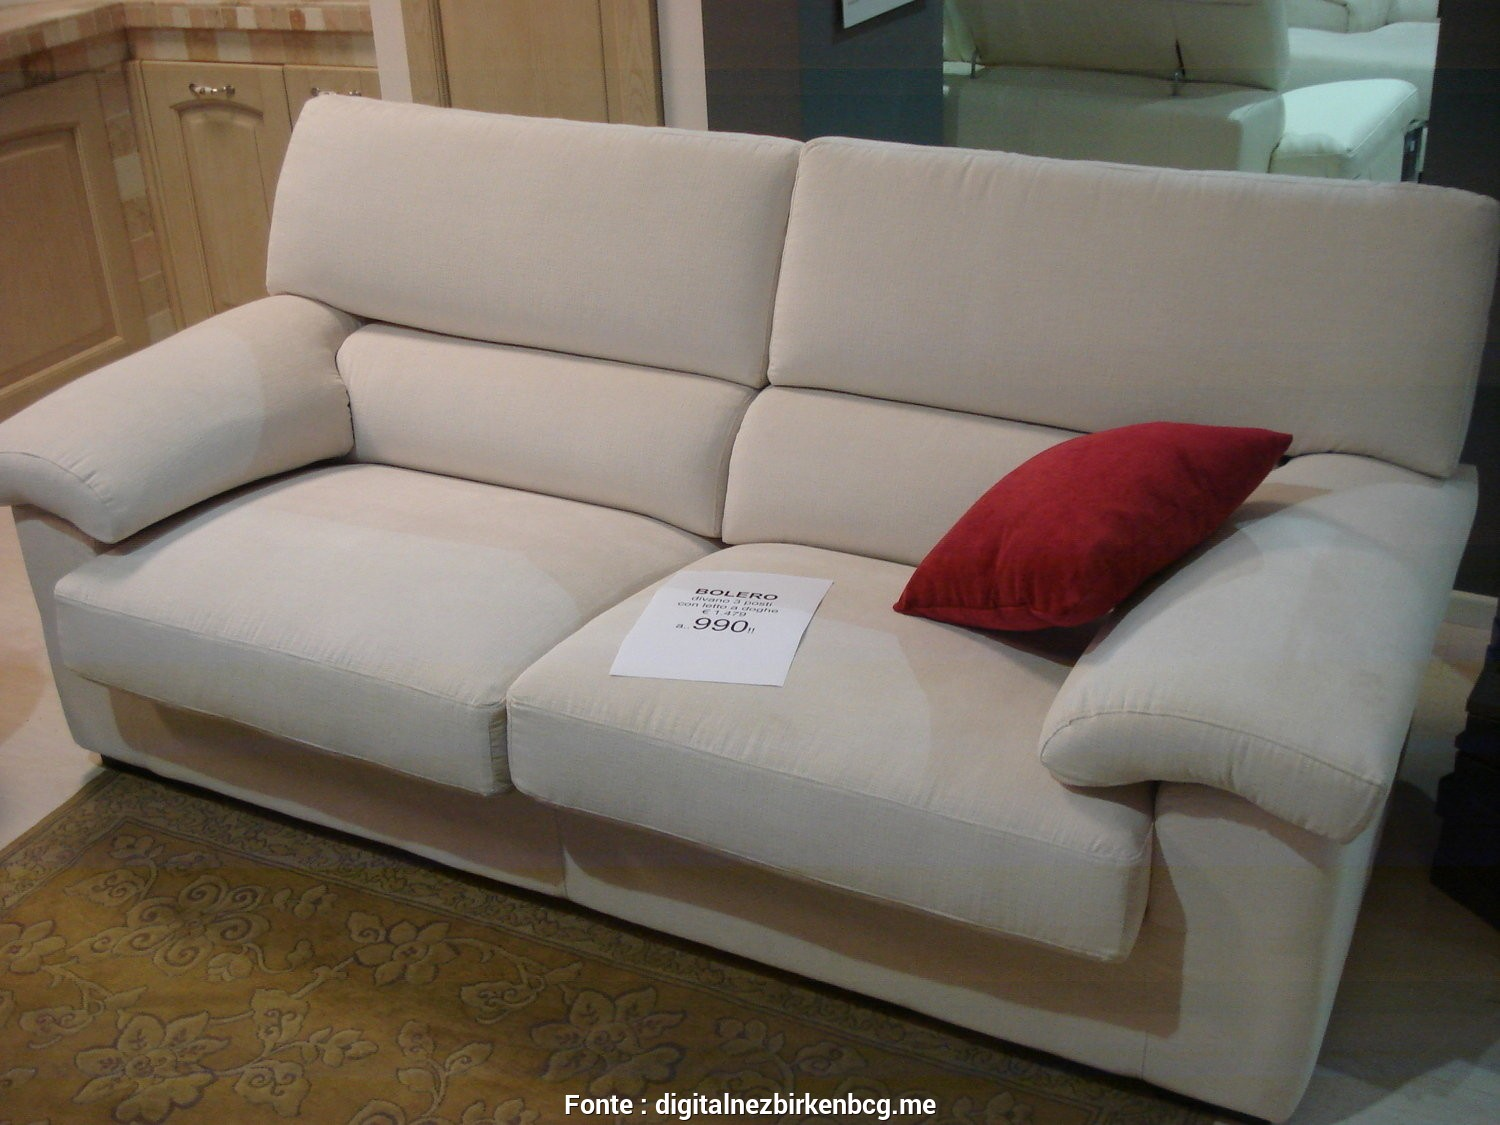 Letti Di Design In Offerta : Fantasia 5 divano letto offerta lissone keever for congress